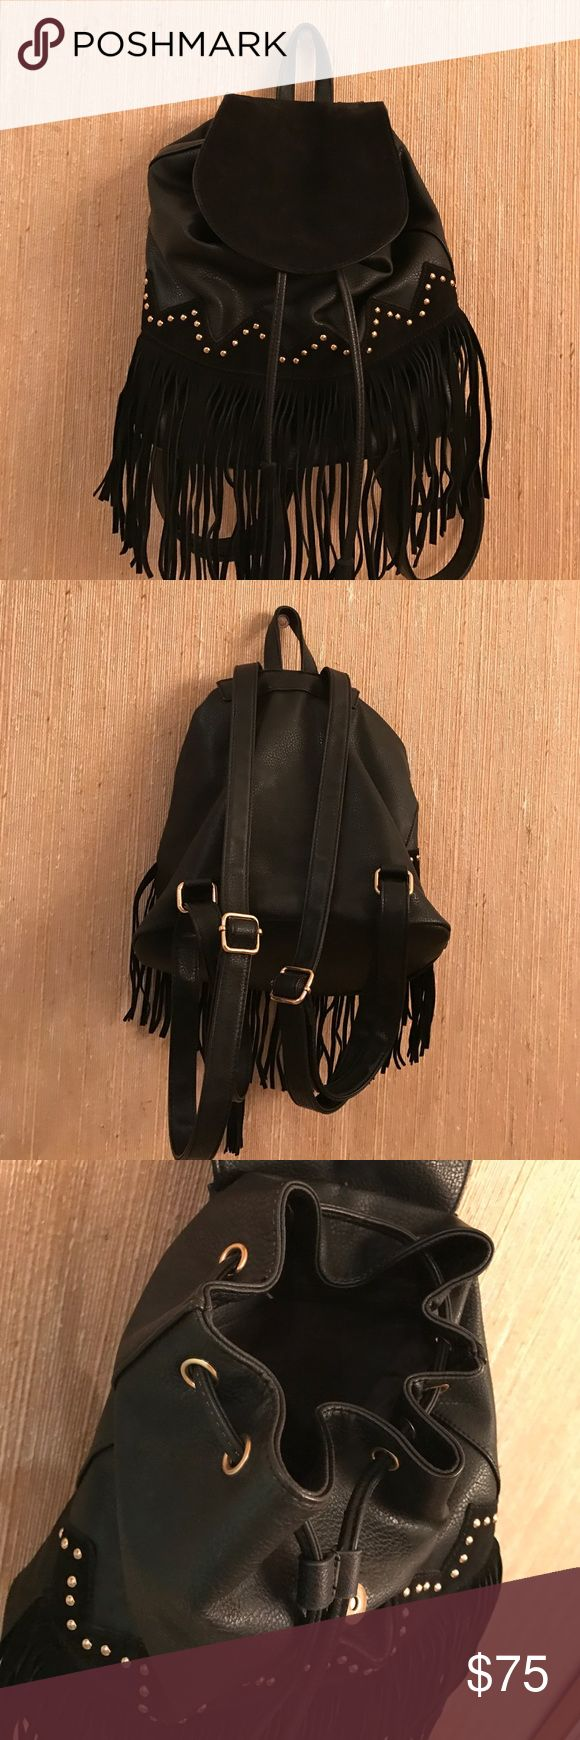 Black Leather and Gold Studded Fringe Backpack Only worn once! Just like new! Adorable durable leather backpack that is perfect for festival season, cinched closure with lots of pockets for storage. Textured flap and fringe, with studded bottom and adjustable straps. Approximately 12 inches tall. Bags Backpacks